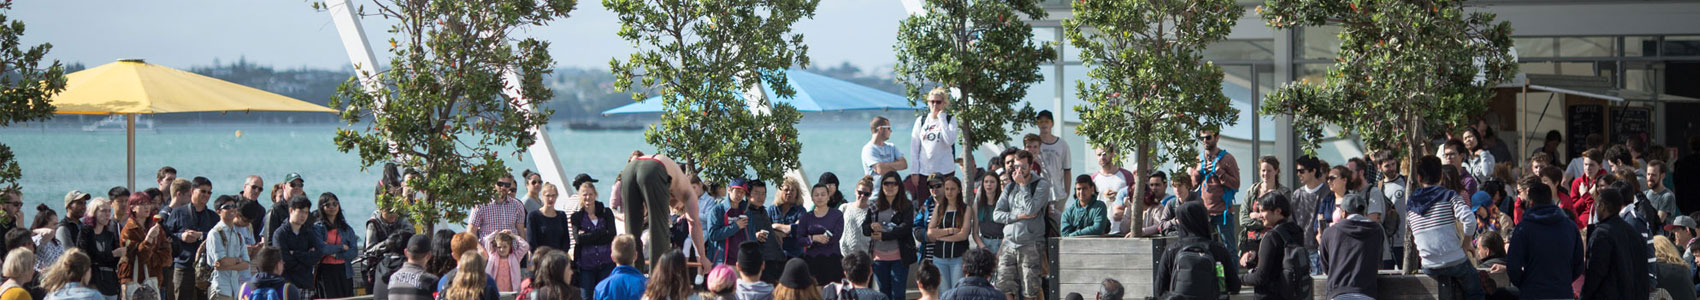 Things to do on Queens Wharf